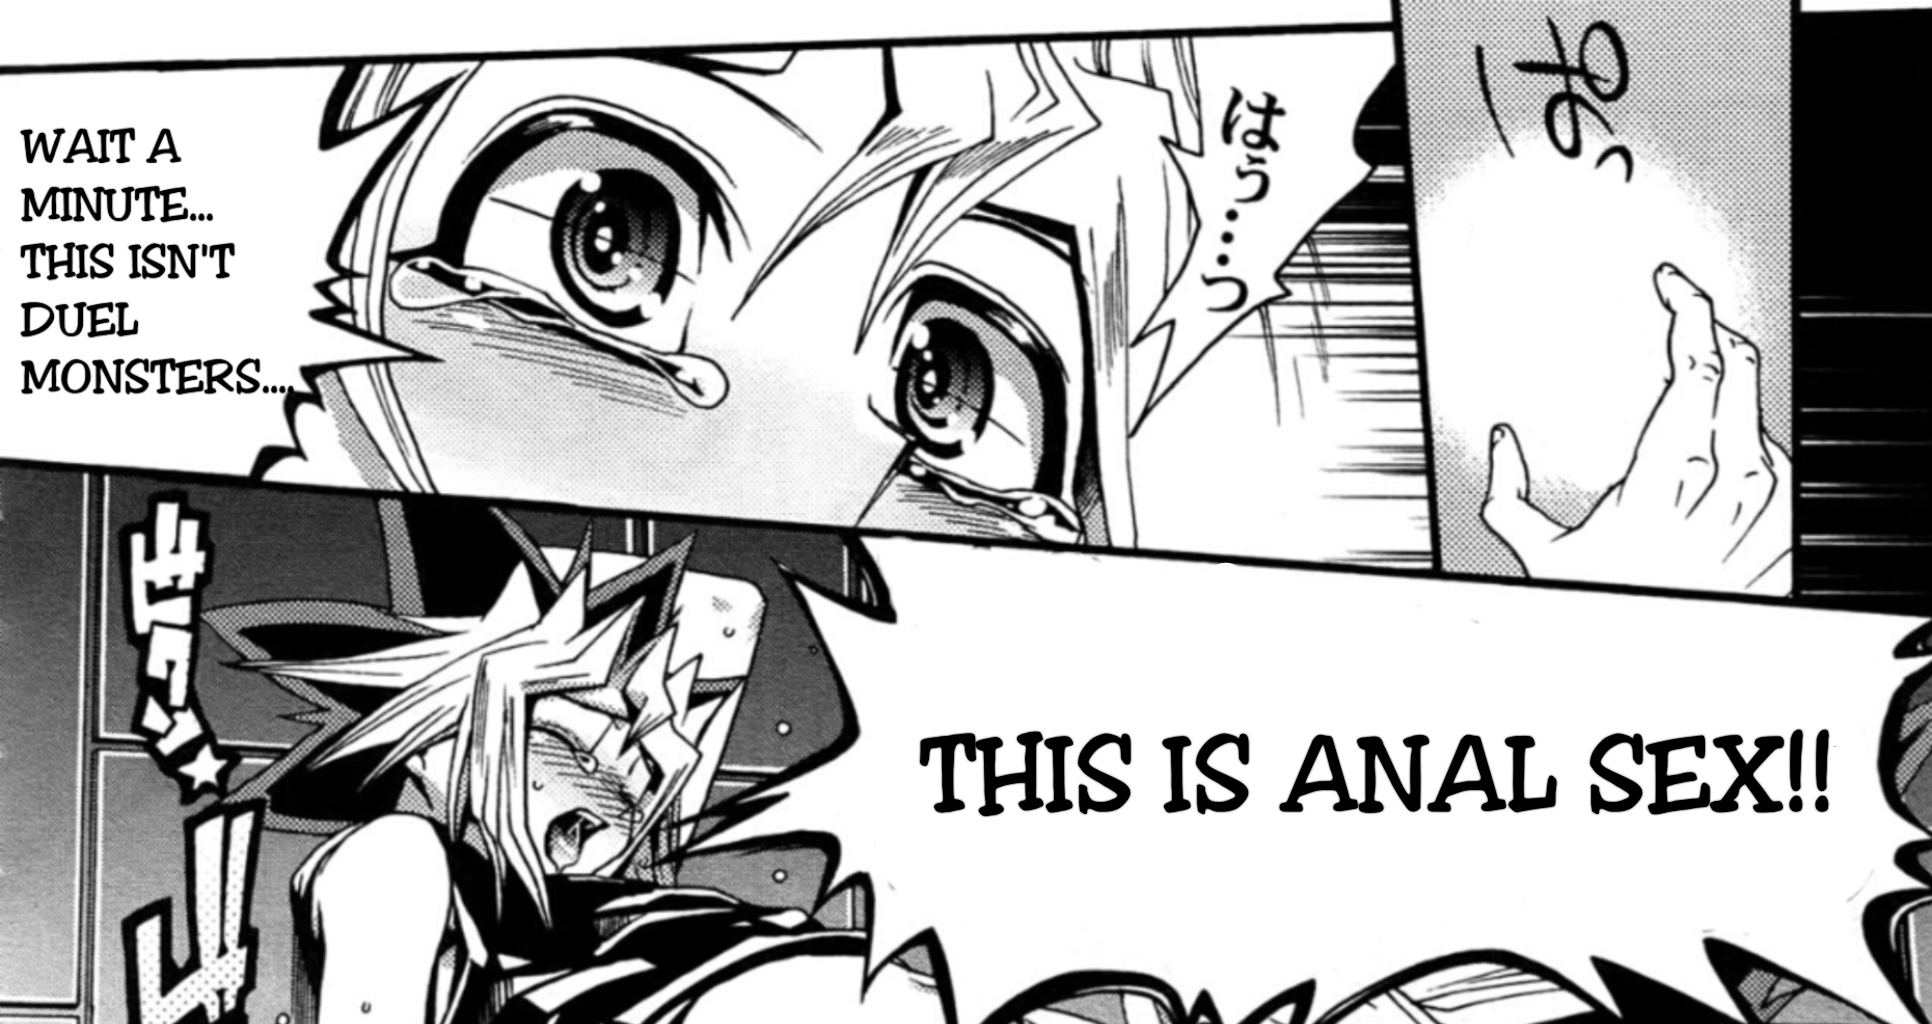 Analsex Cartoon heart of my ass | hentai quotes | know your meme